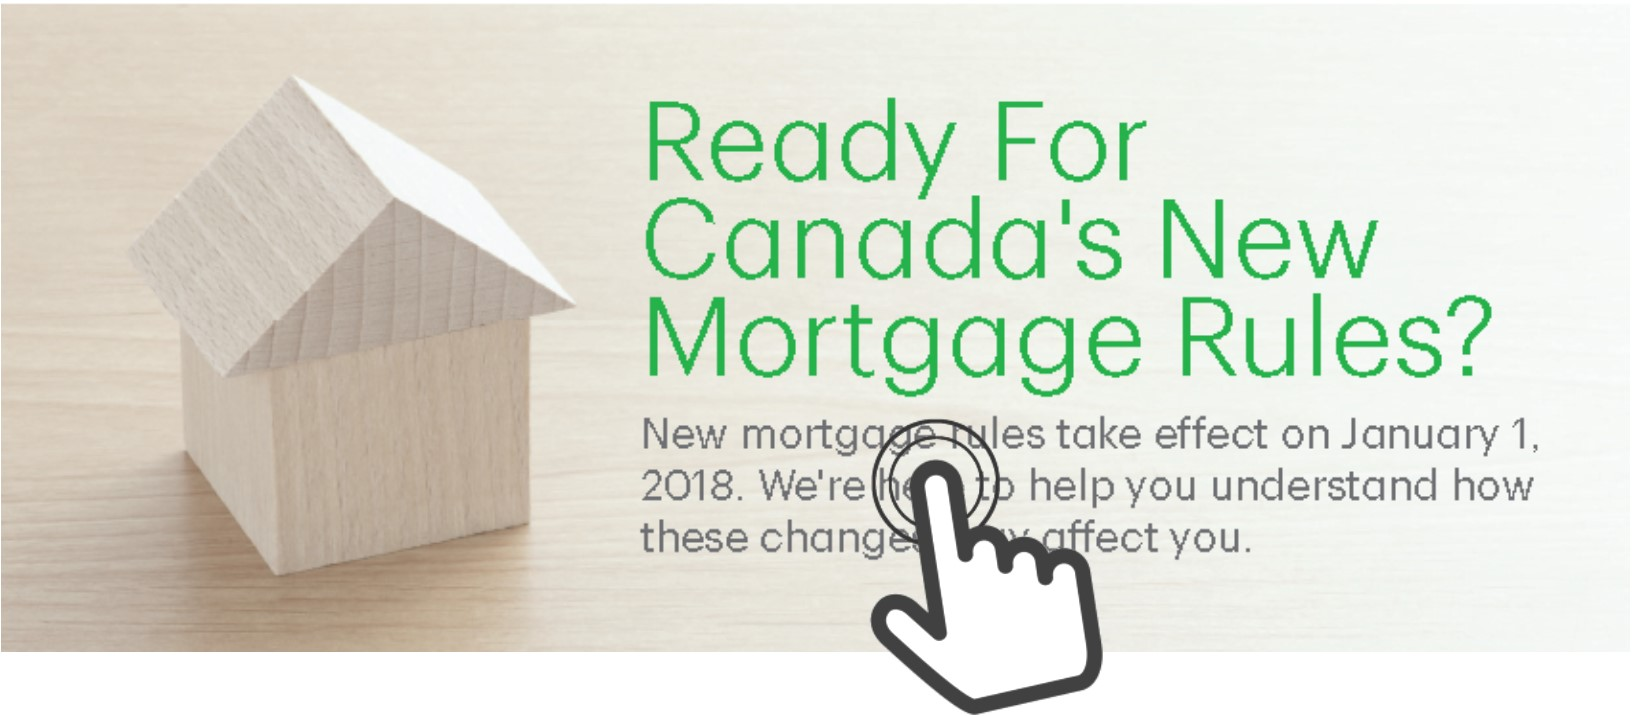 TD Canadian Mortgage Rules.jpg